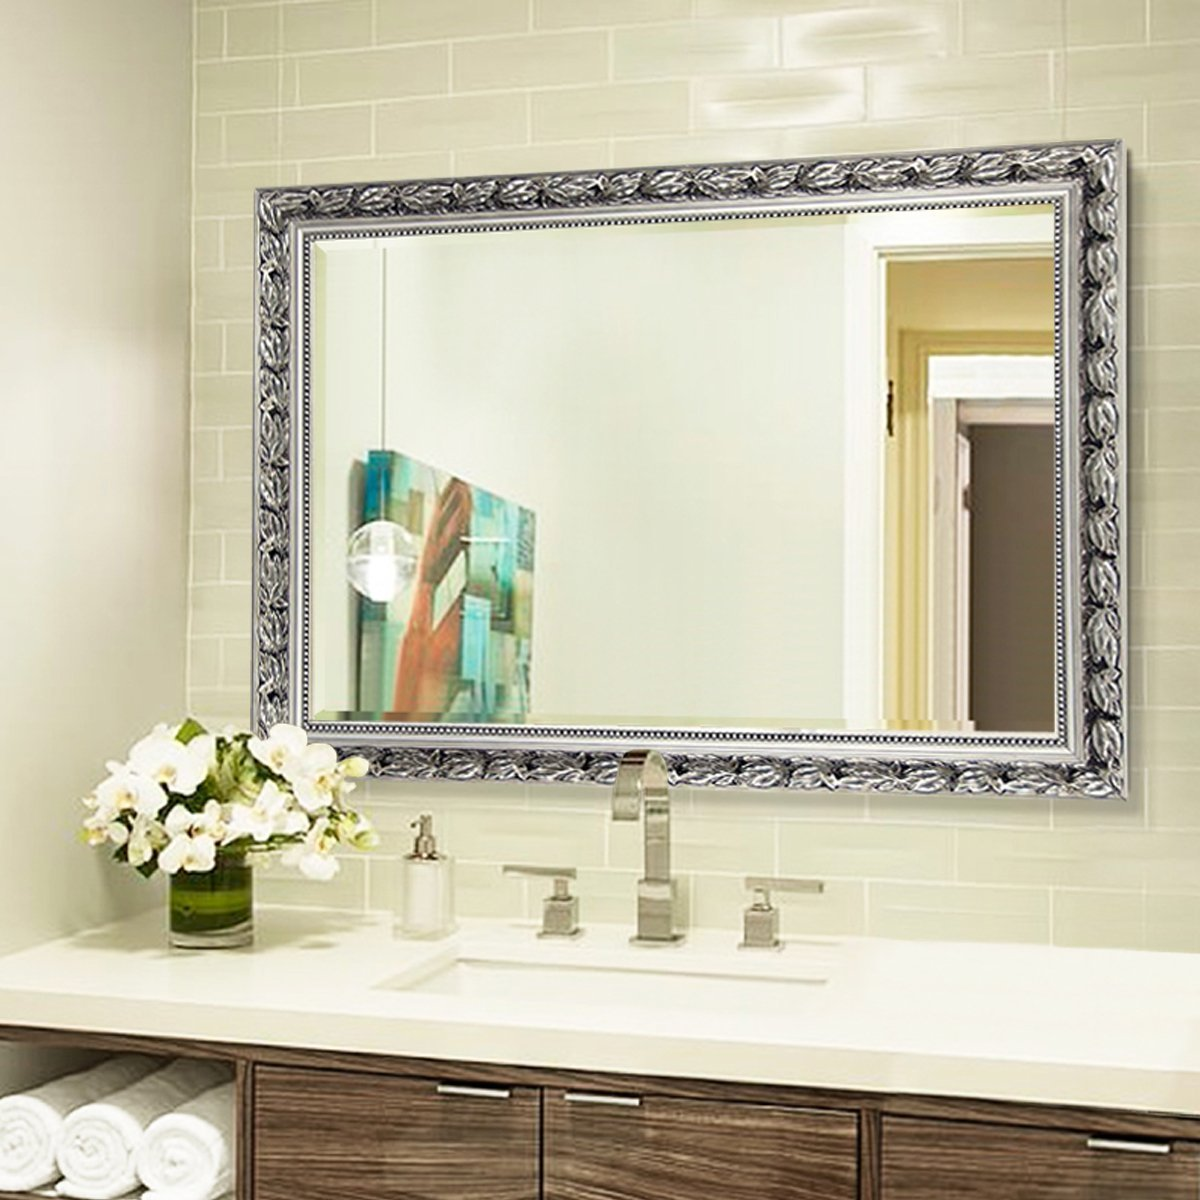 Vanity Bathroom Mirrors for Wall (32''x24'')